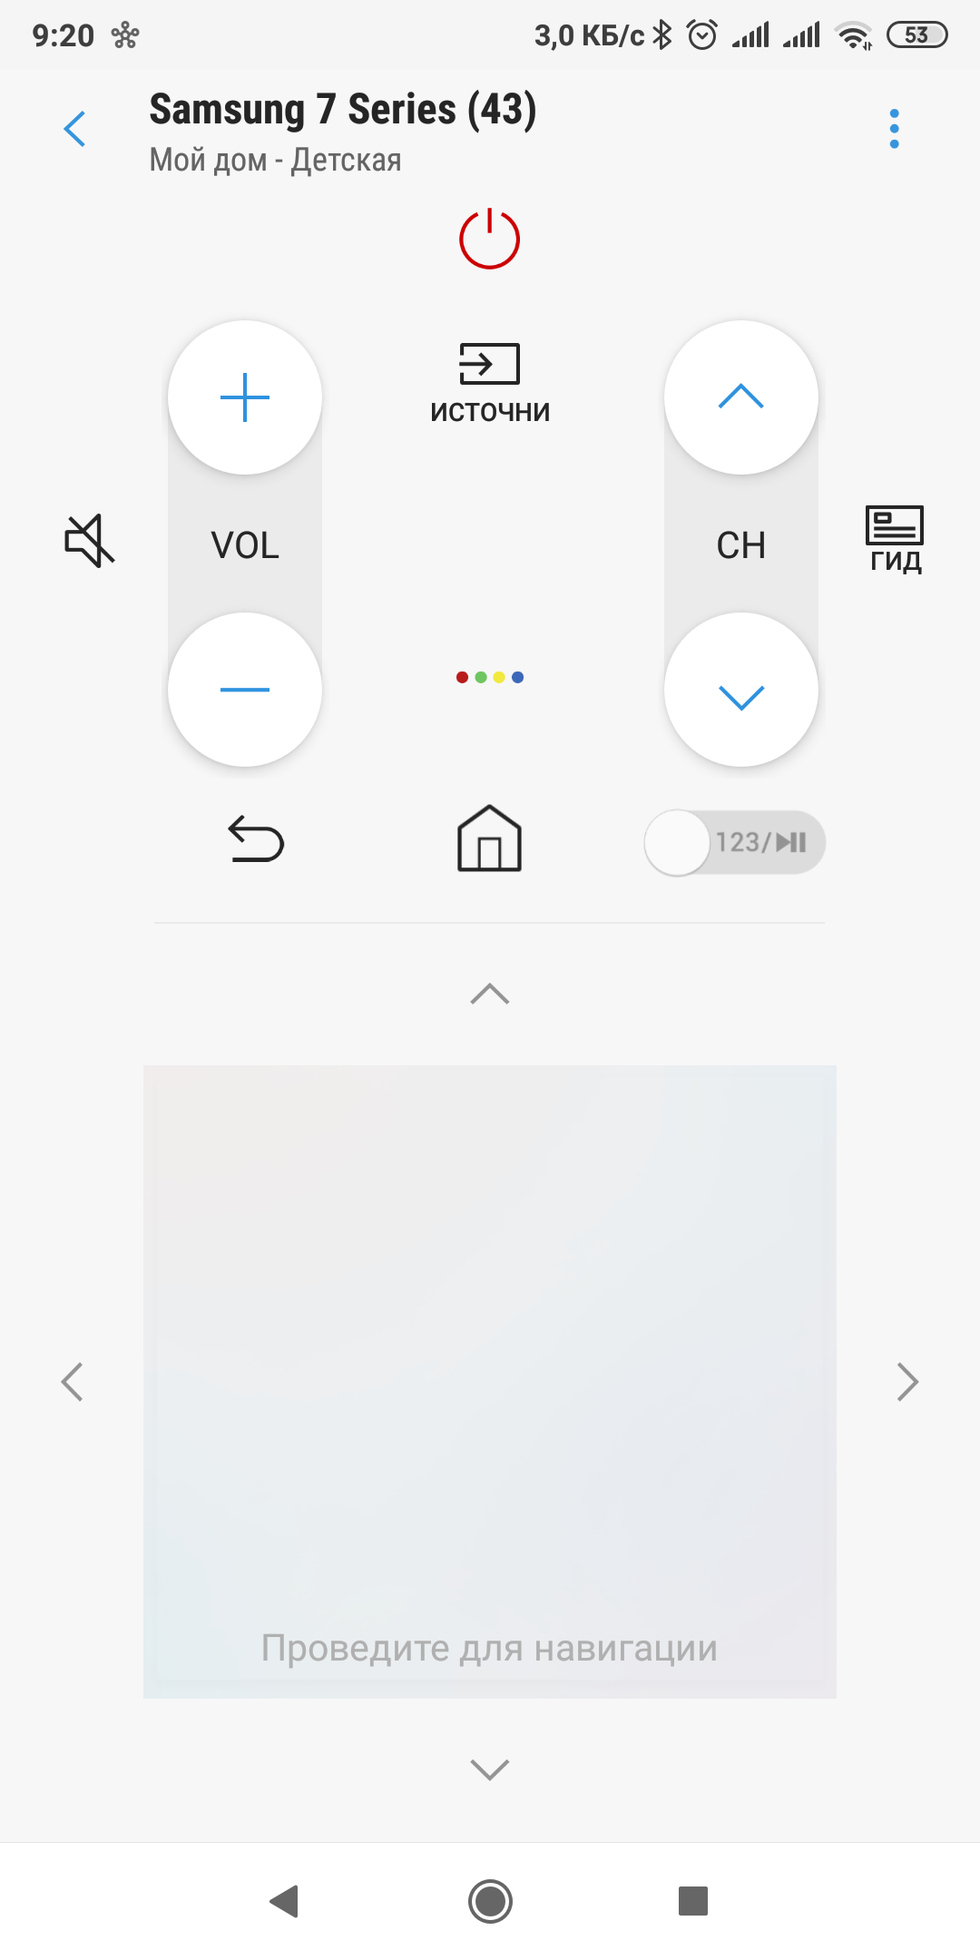 Screenshot_2019-05-01-09-20-42-918_com.samsung.android.oneconnect.png